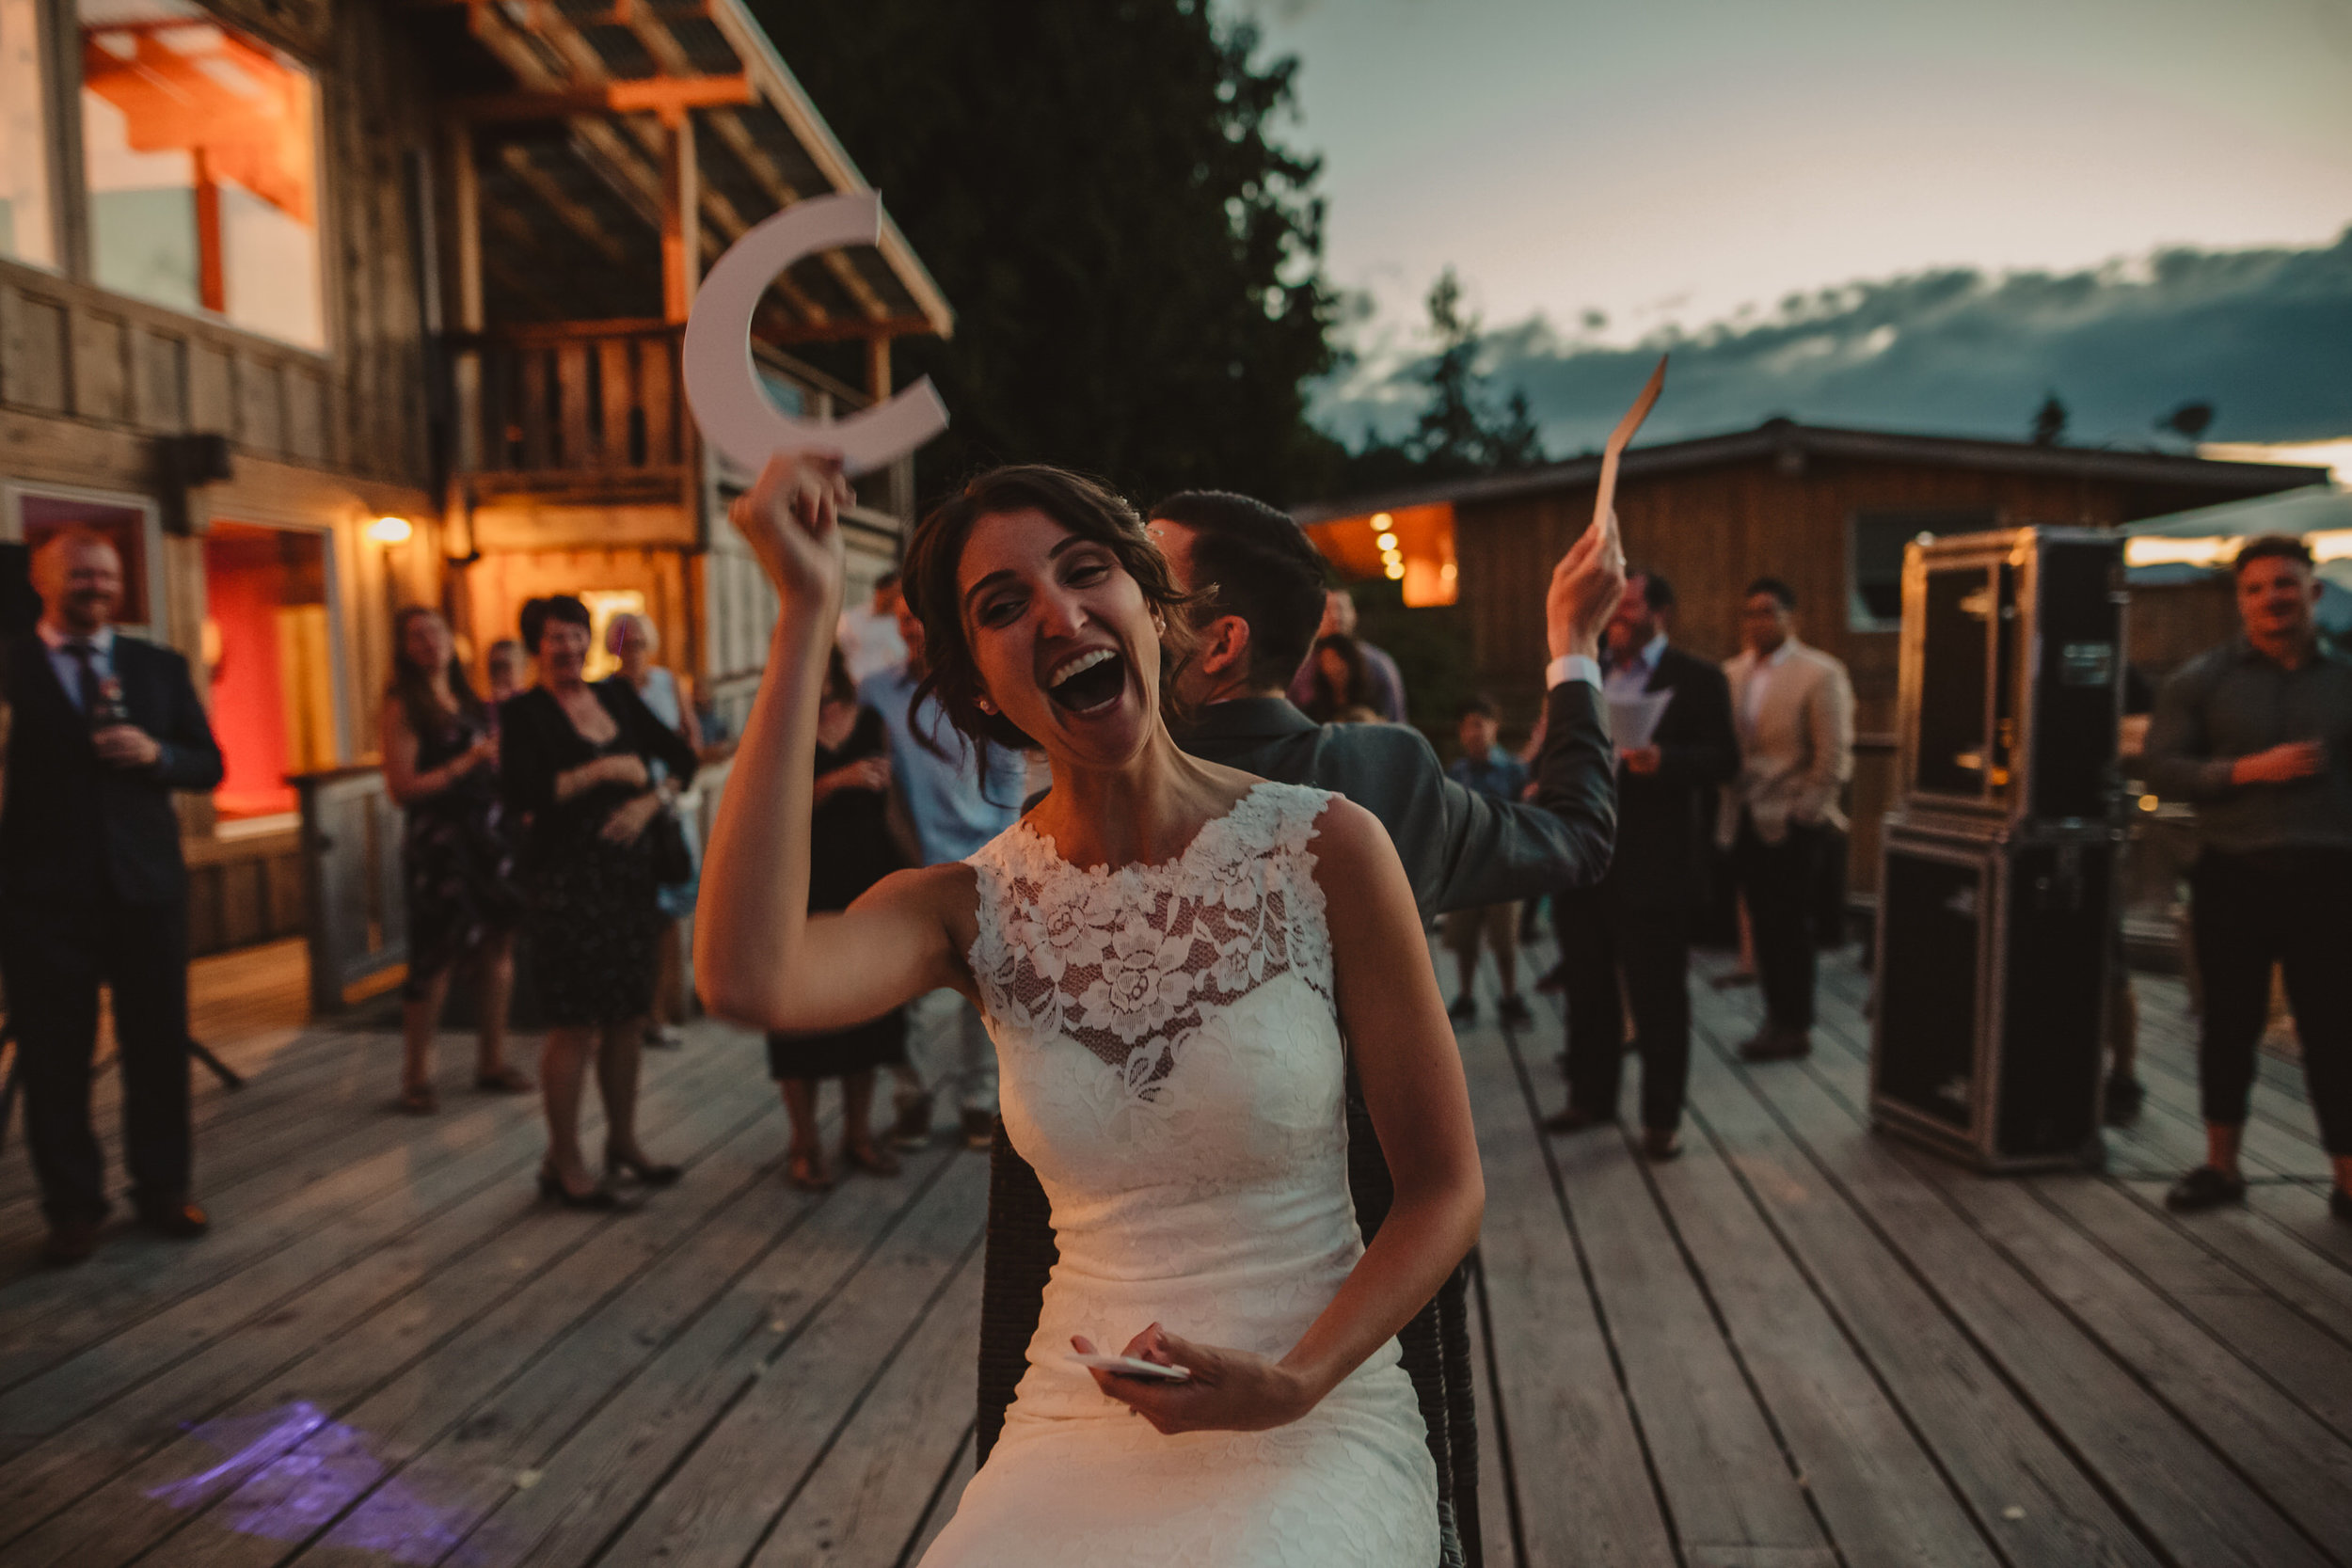 West Coast Wilderness Lodge Wedding Photos - Vancouver Wedding Photographer & Videographer - Sunshine Coast Wedding Photos - Sunshine Coast Wedding Photographer - Jennifer Picard Photography - IMG_0145.jpg